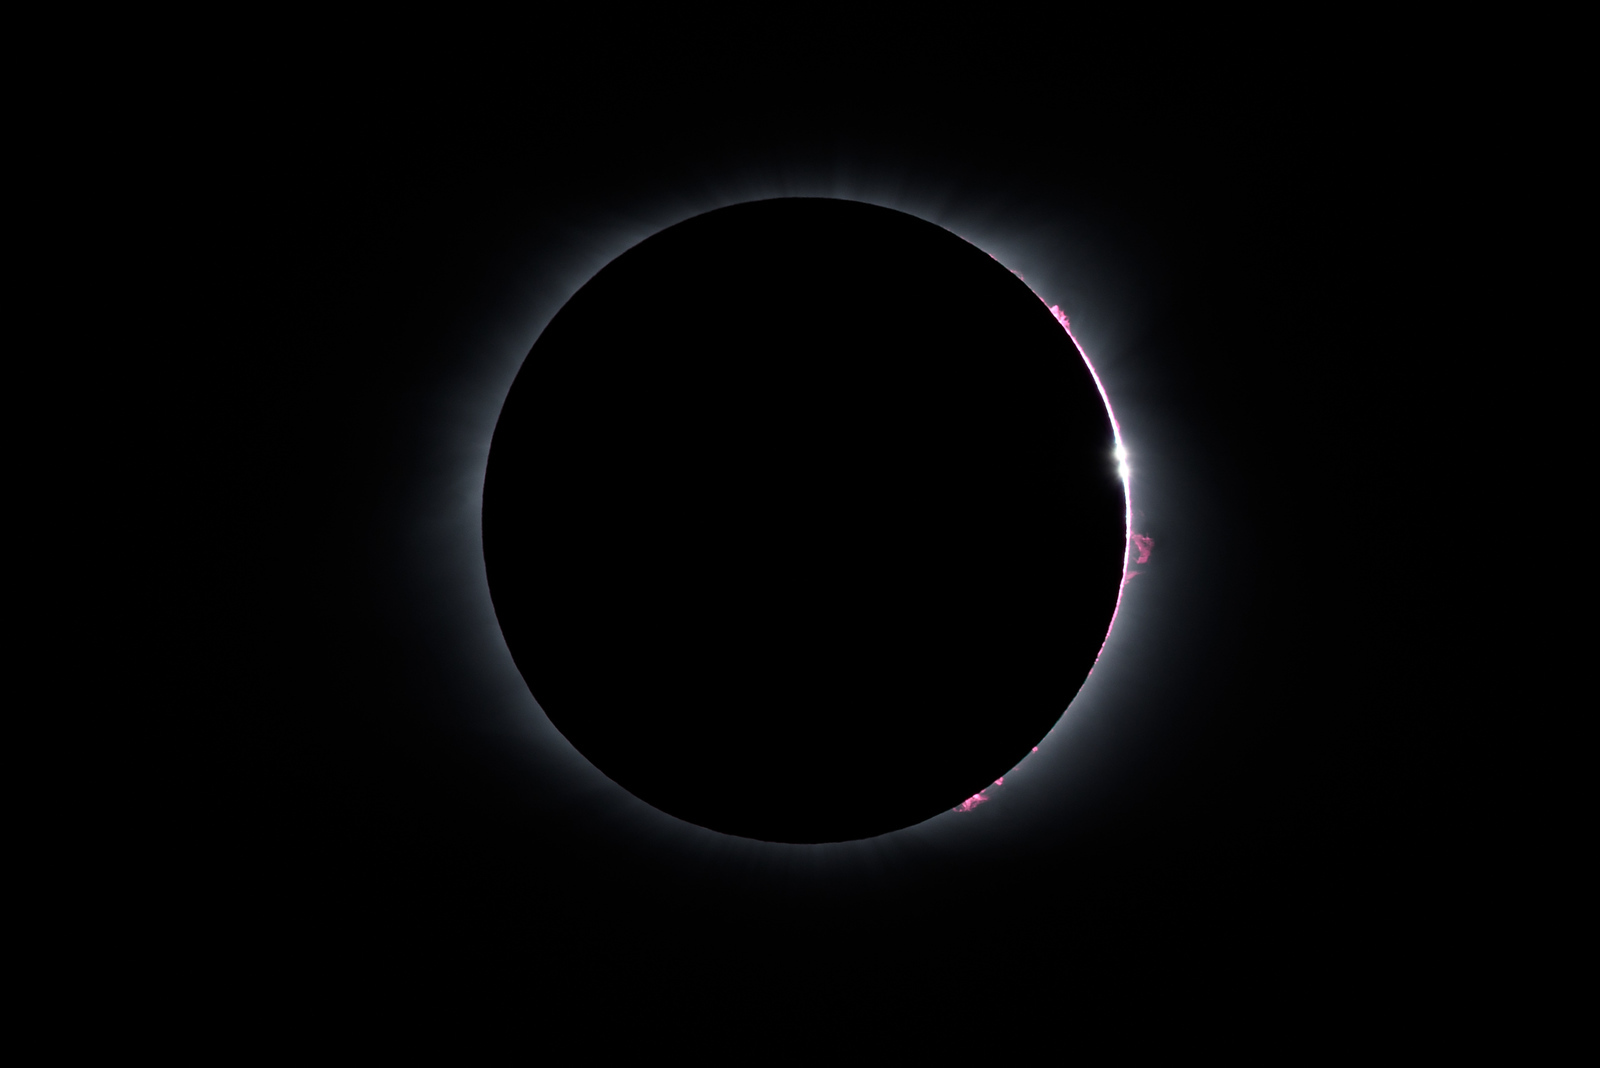 BAILEY'S BEADS & PROMINENCES AT END OF TOTALITY